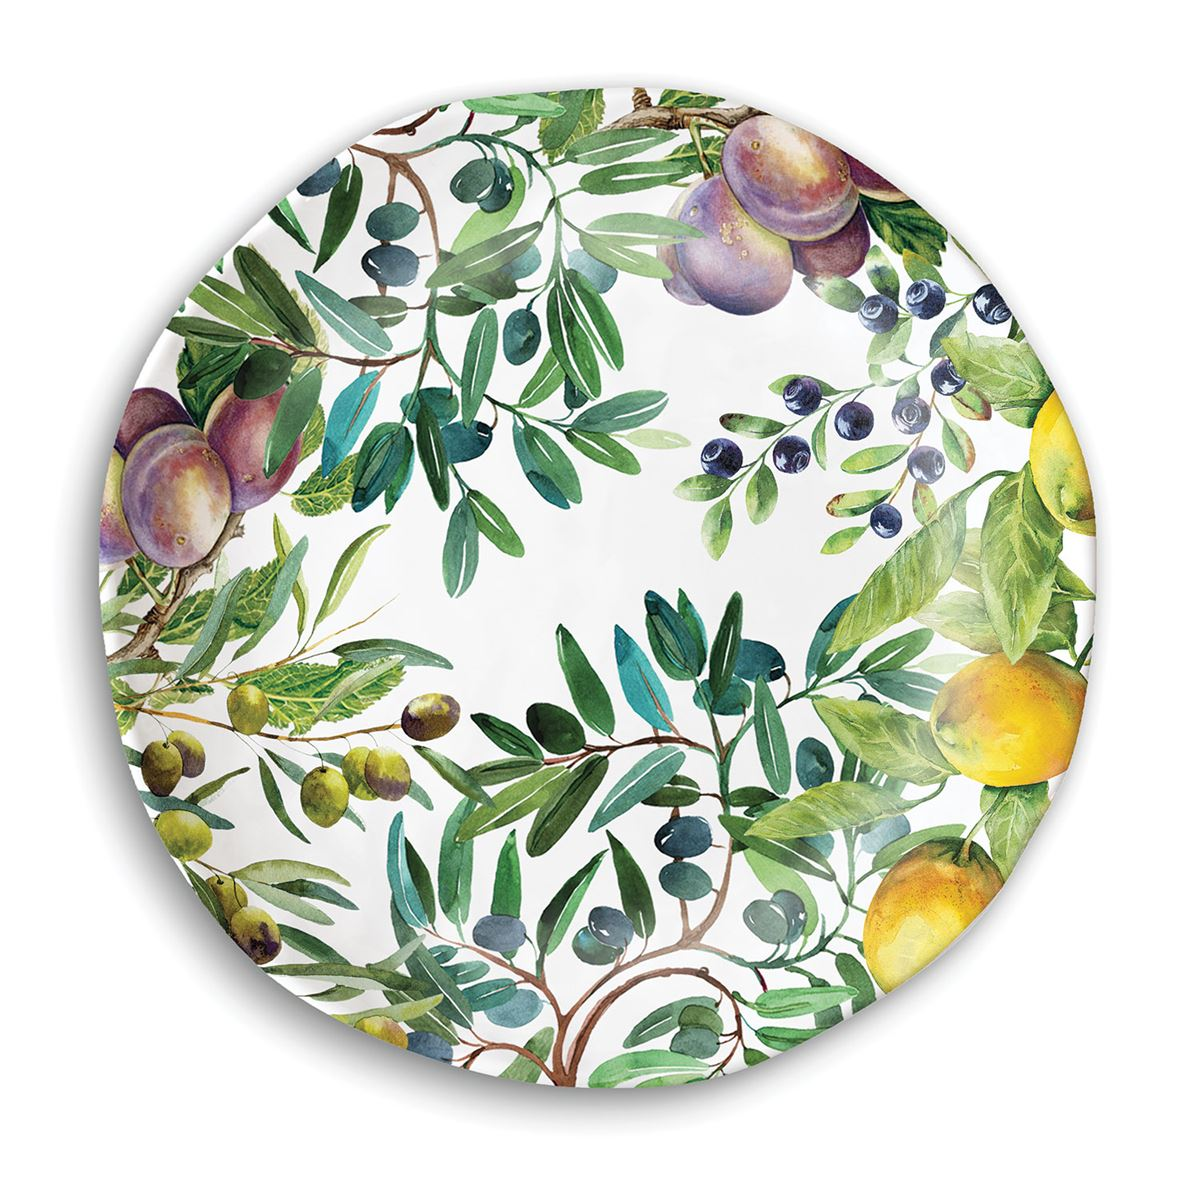 Tuscan Grove Melamine Casual Dinner Plate ...  sc 1 st  Ferris Wheels and Carousels & Michel Design Works Melamine Casual Dinner Plate - Tuscan Grove